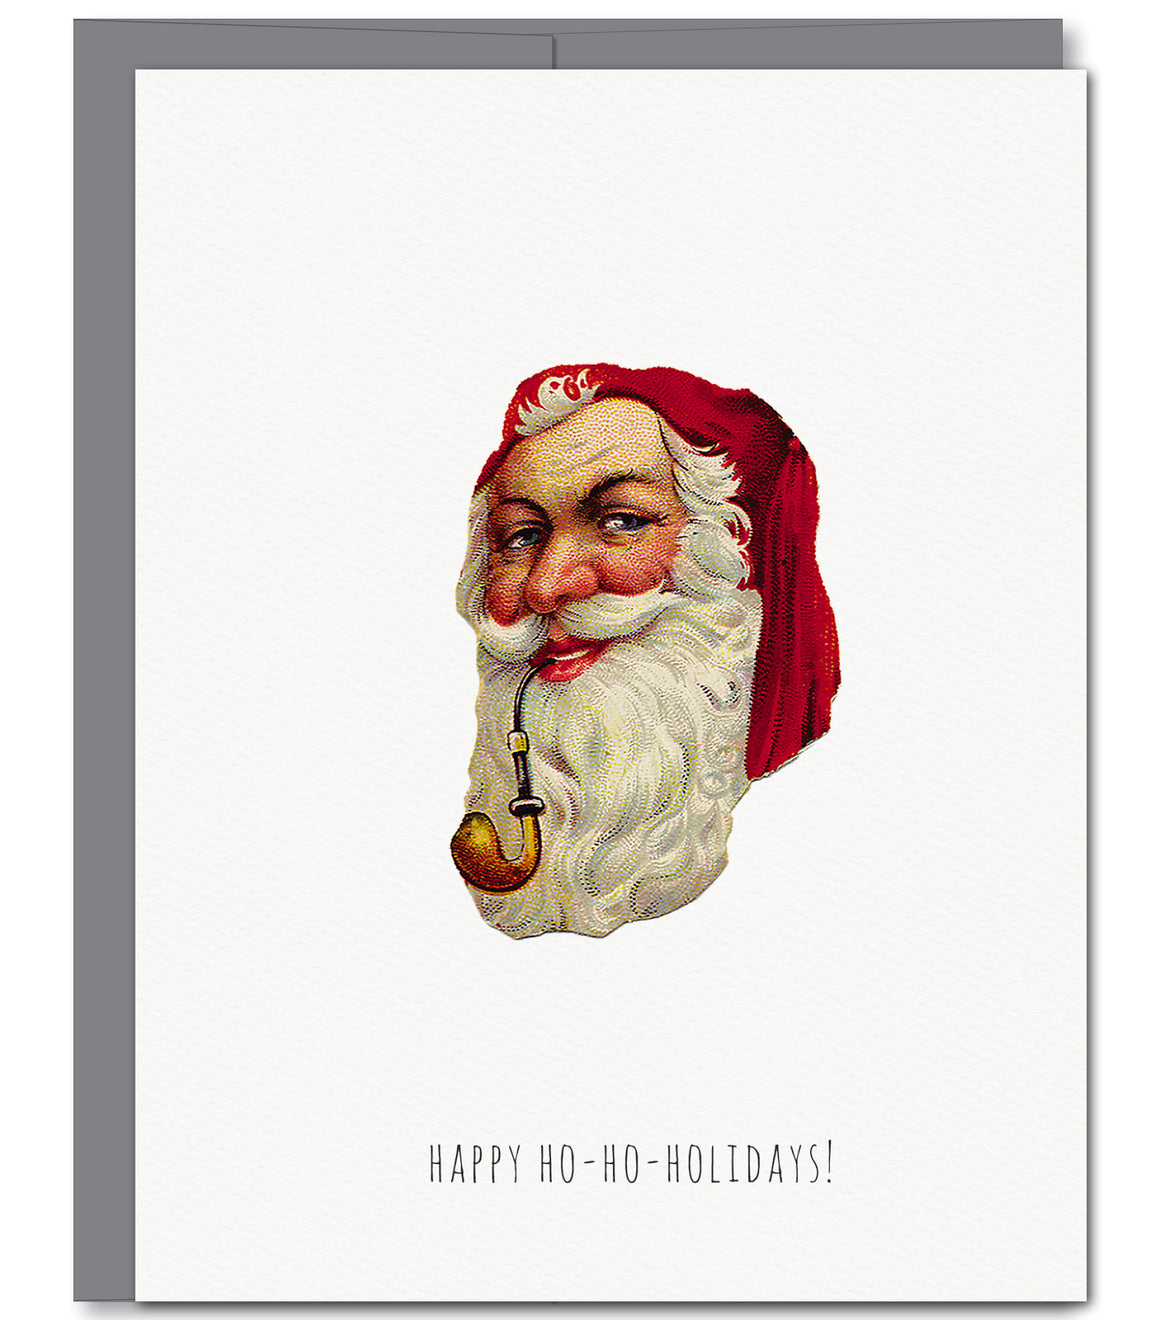 Jolly Santa Holiday Glitter Greeting Card | Sylvan Gate Design